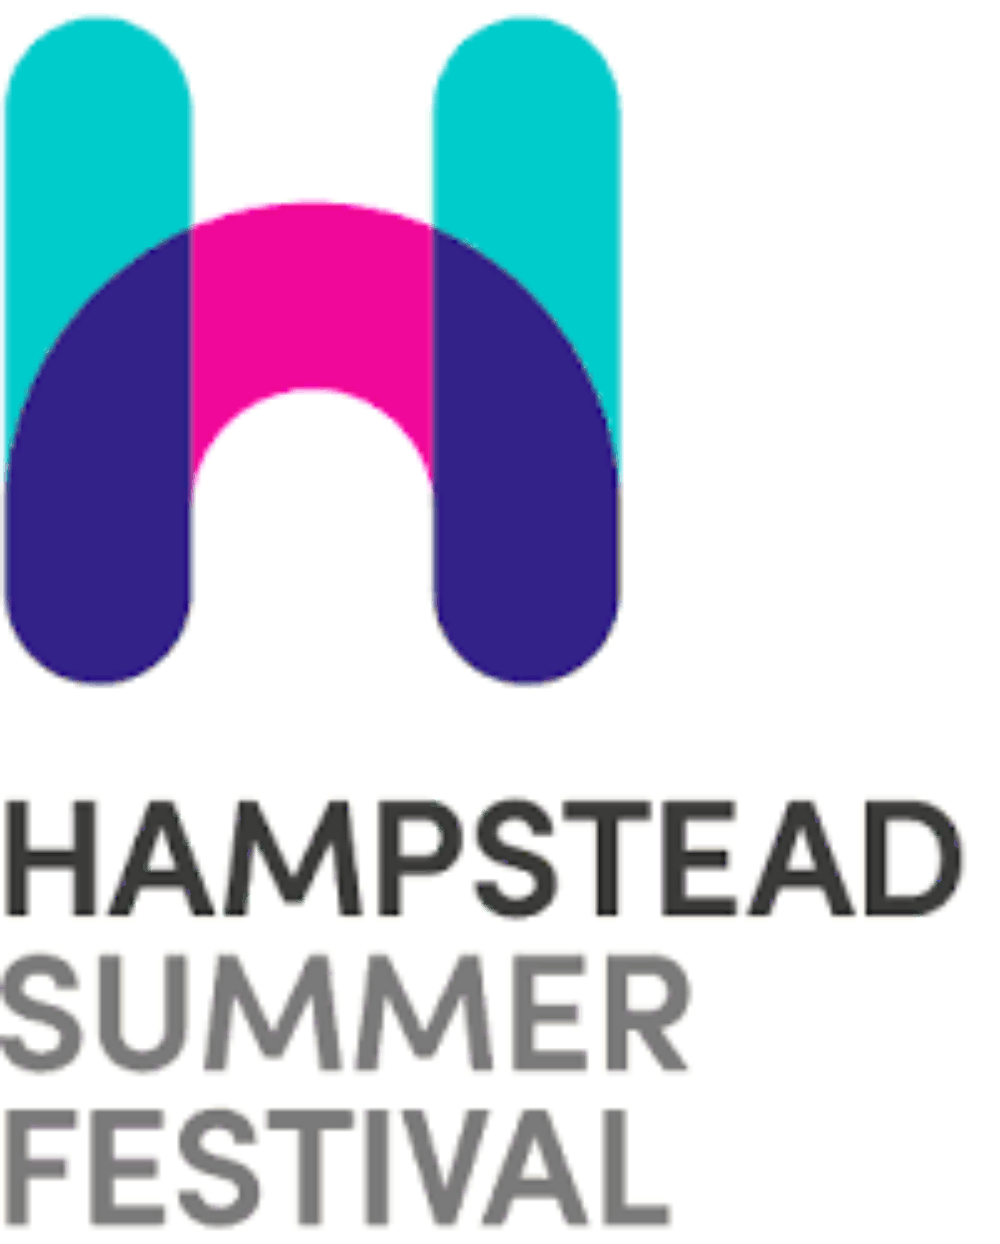 Hampstead Summer Festival